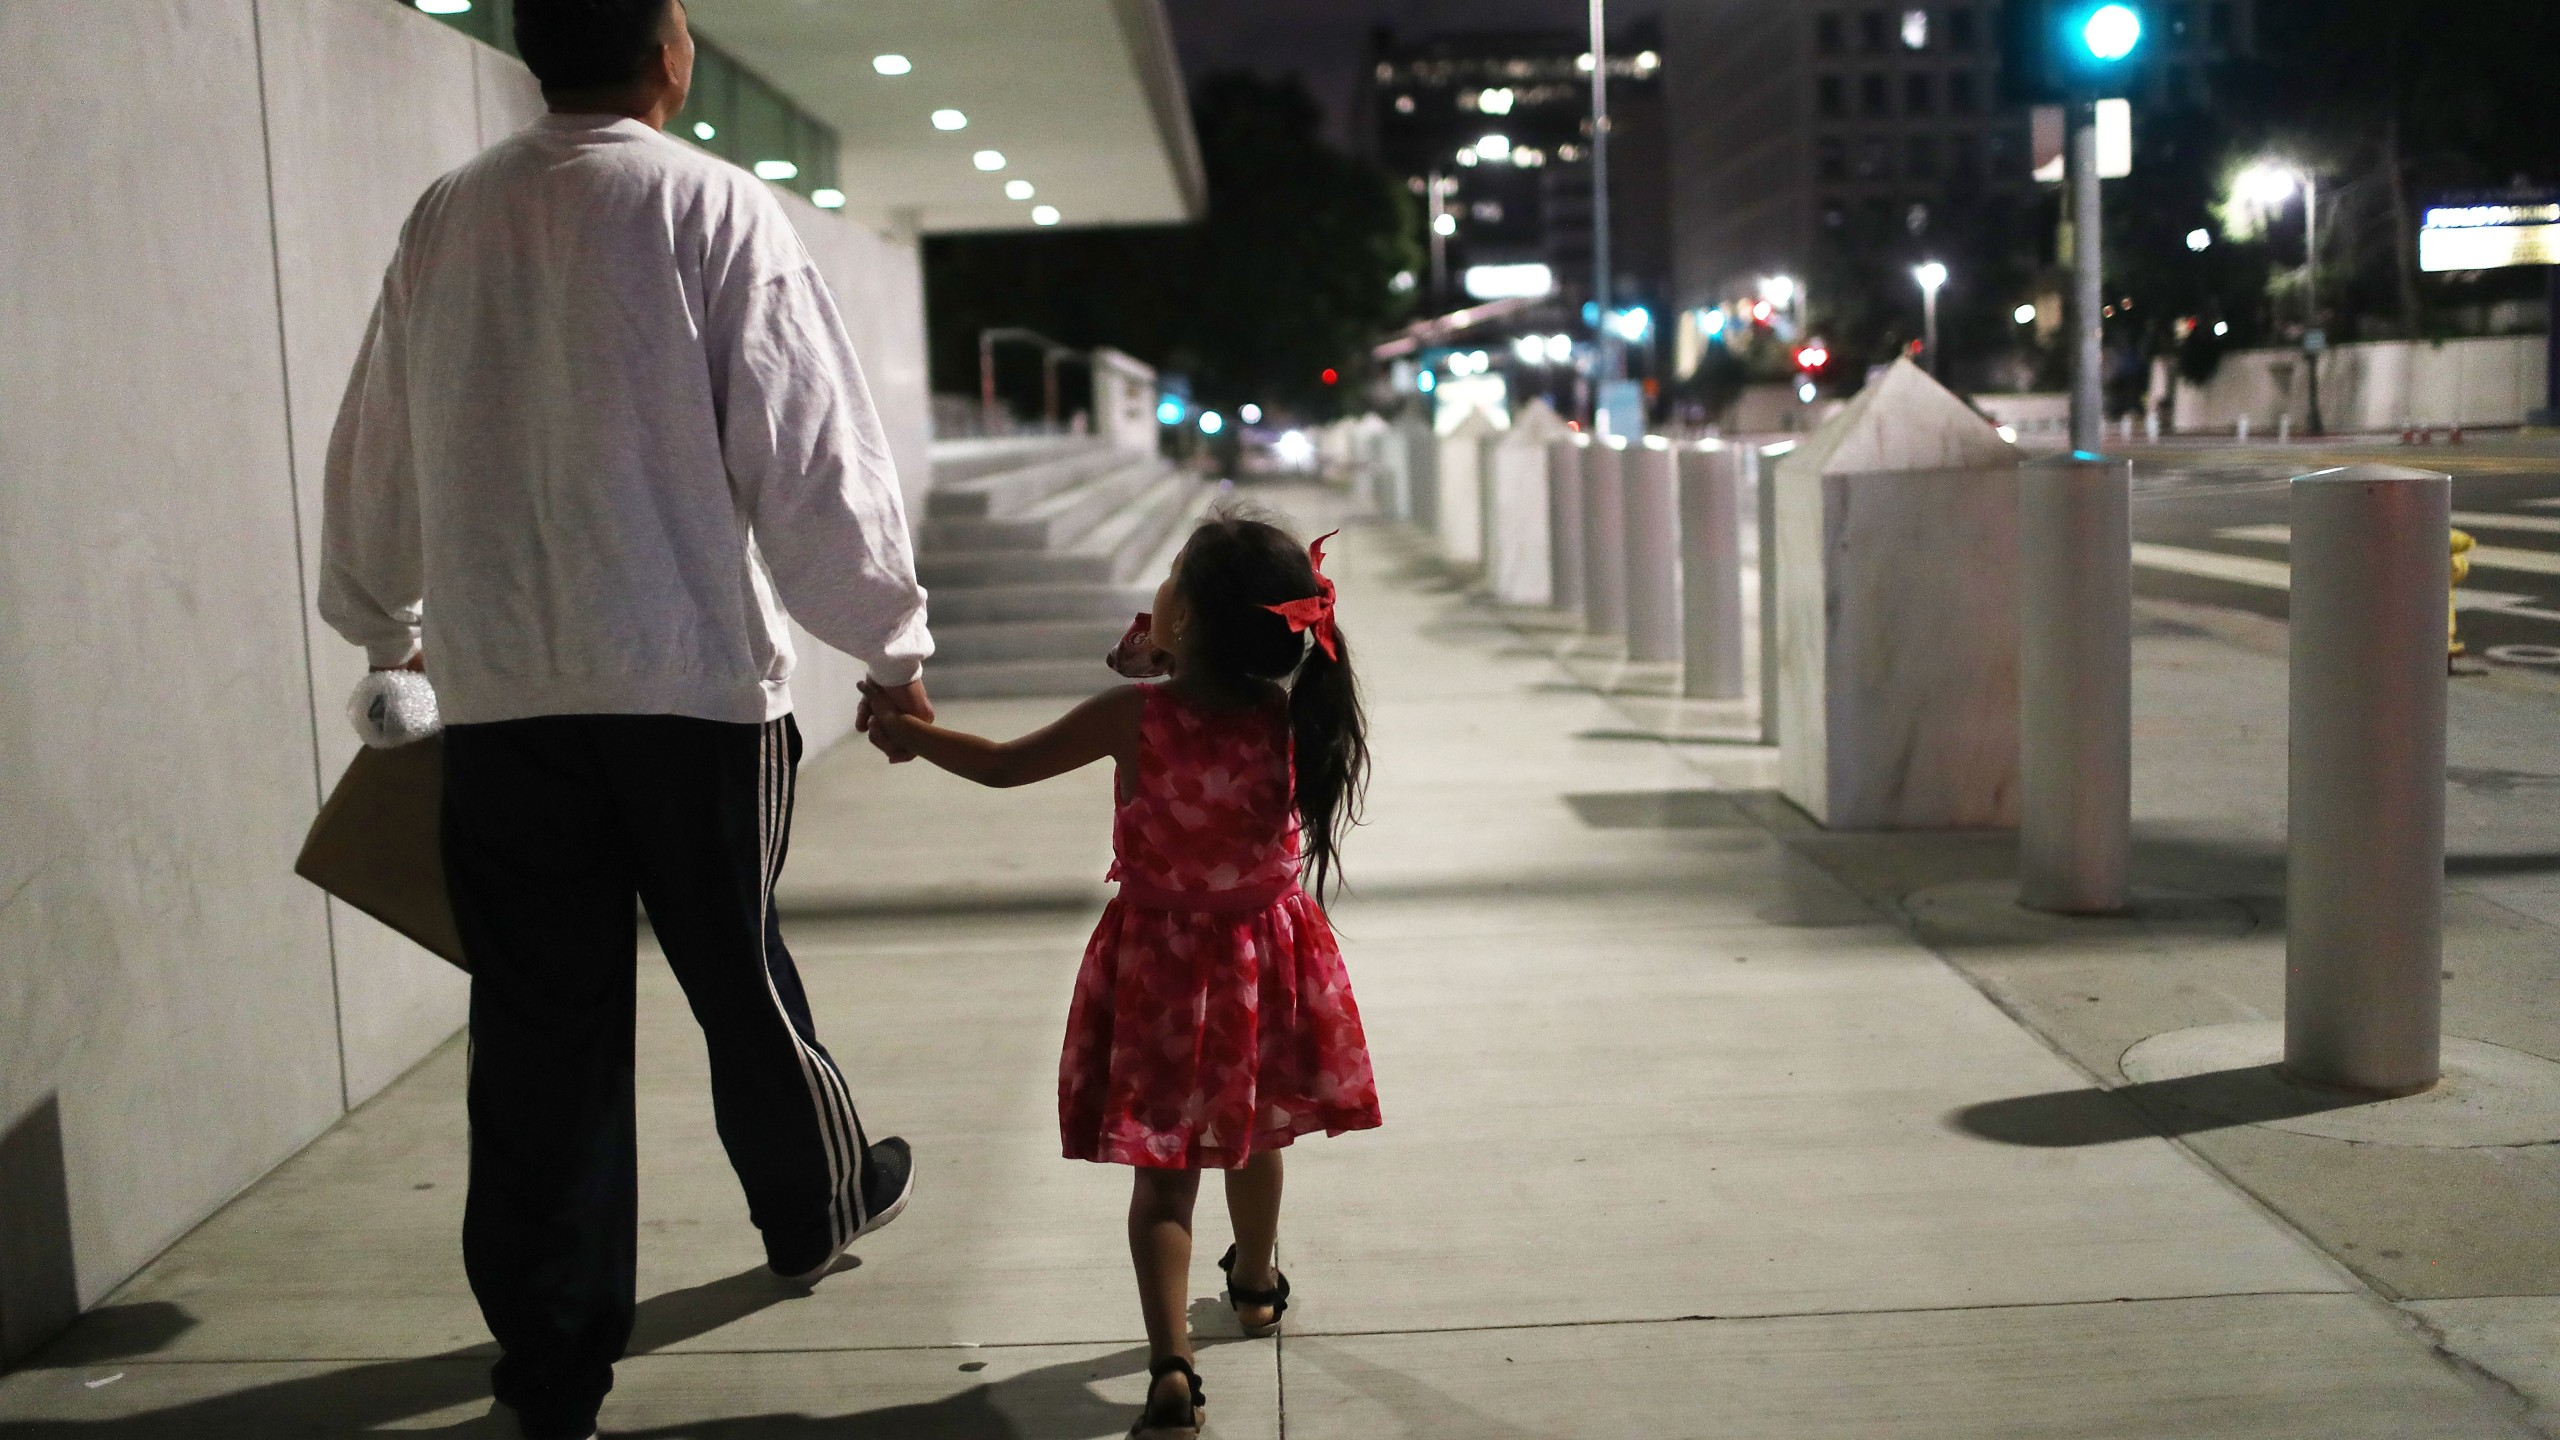 Honduran father Victor walks with his daughter Katie near Metropolitan Detention Center, shortly after he was released on bond from six months in ICE custody, on Oct. 2, 2018, in Los Angeles. (Credit: Mario Tama/Getty Images)